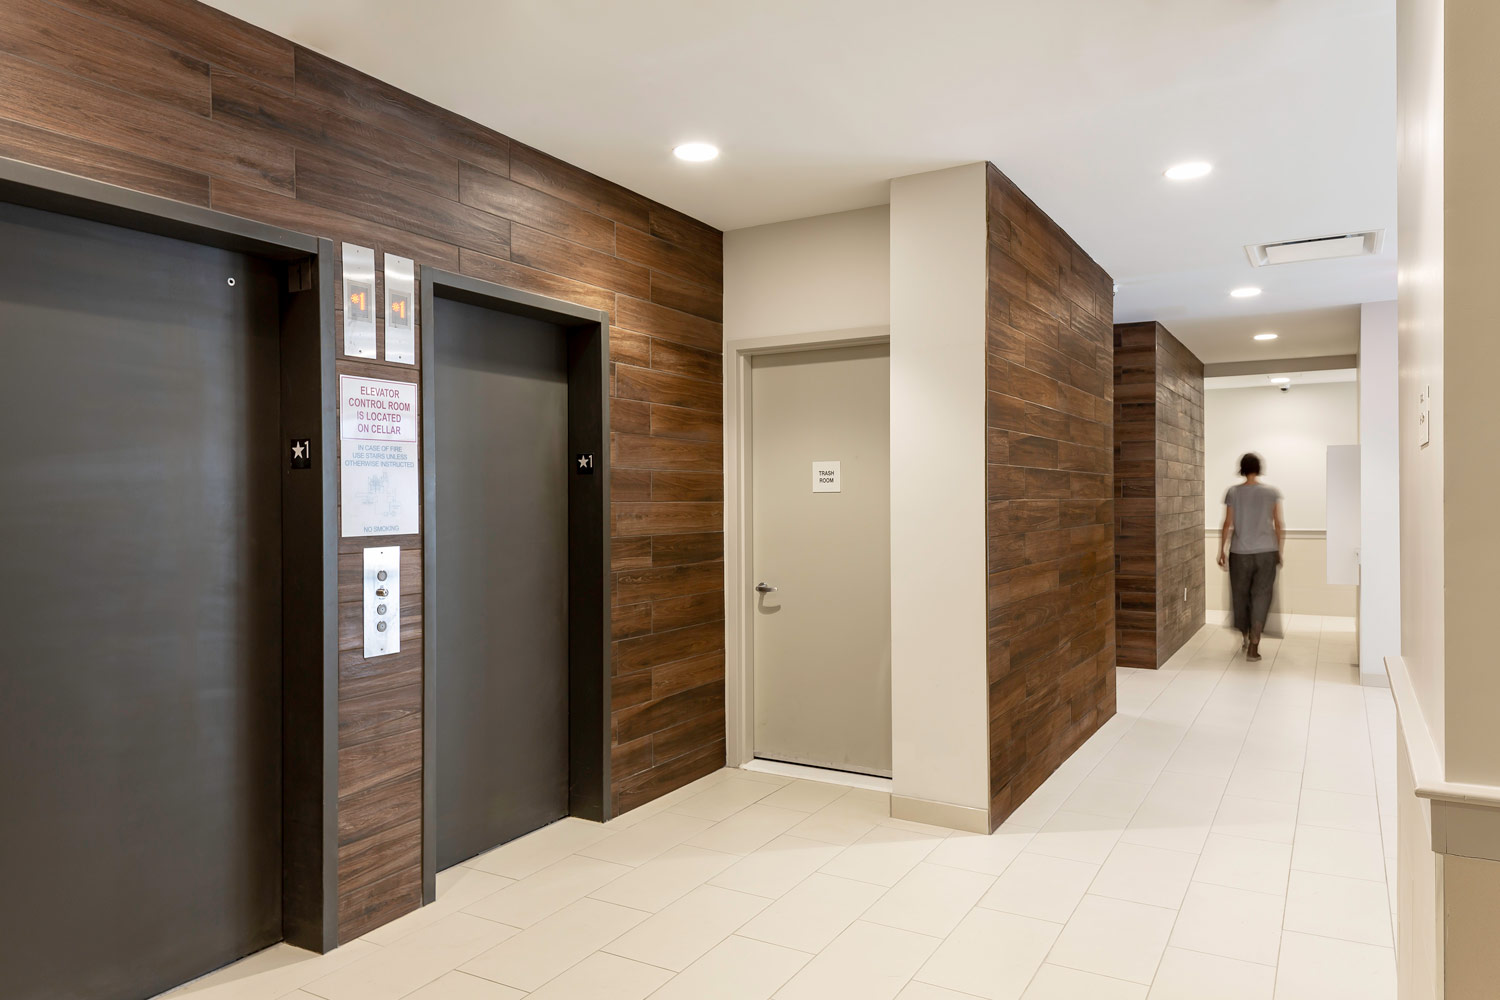 Elevator lobby walls are clad in a wood finish to bring warmth to the space.